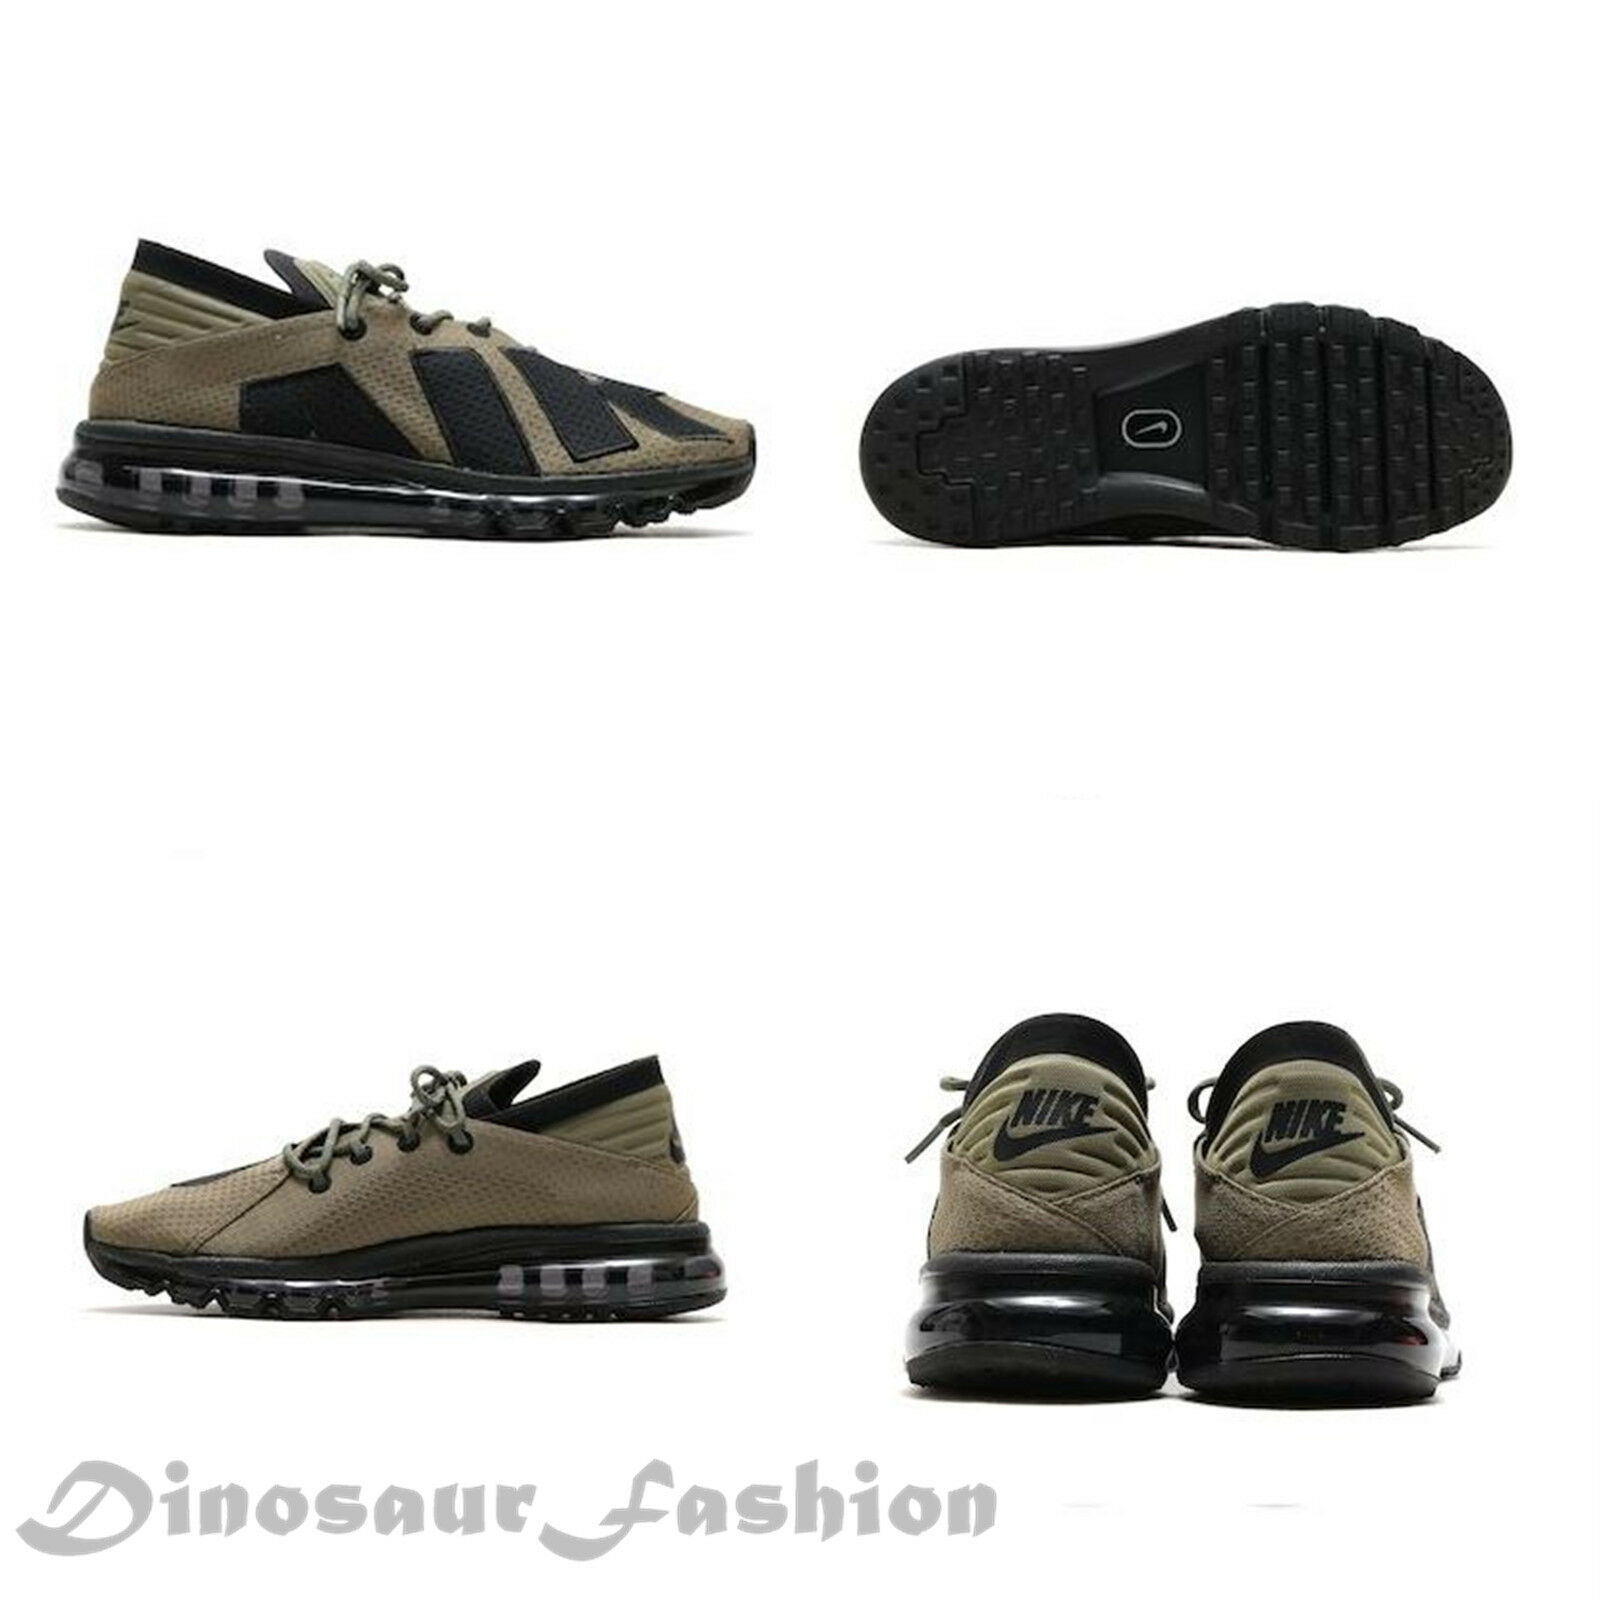 NIKE AIR MAX FLAIR (942236-201) Medium Olive.Men's Sportwears Running shoes.NWB